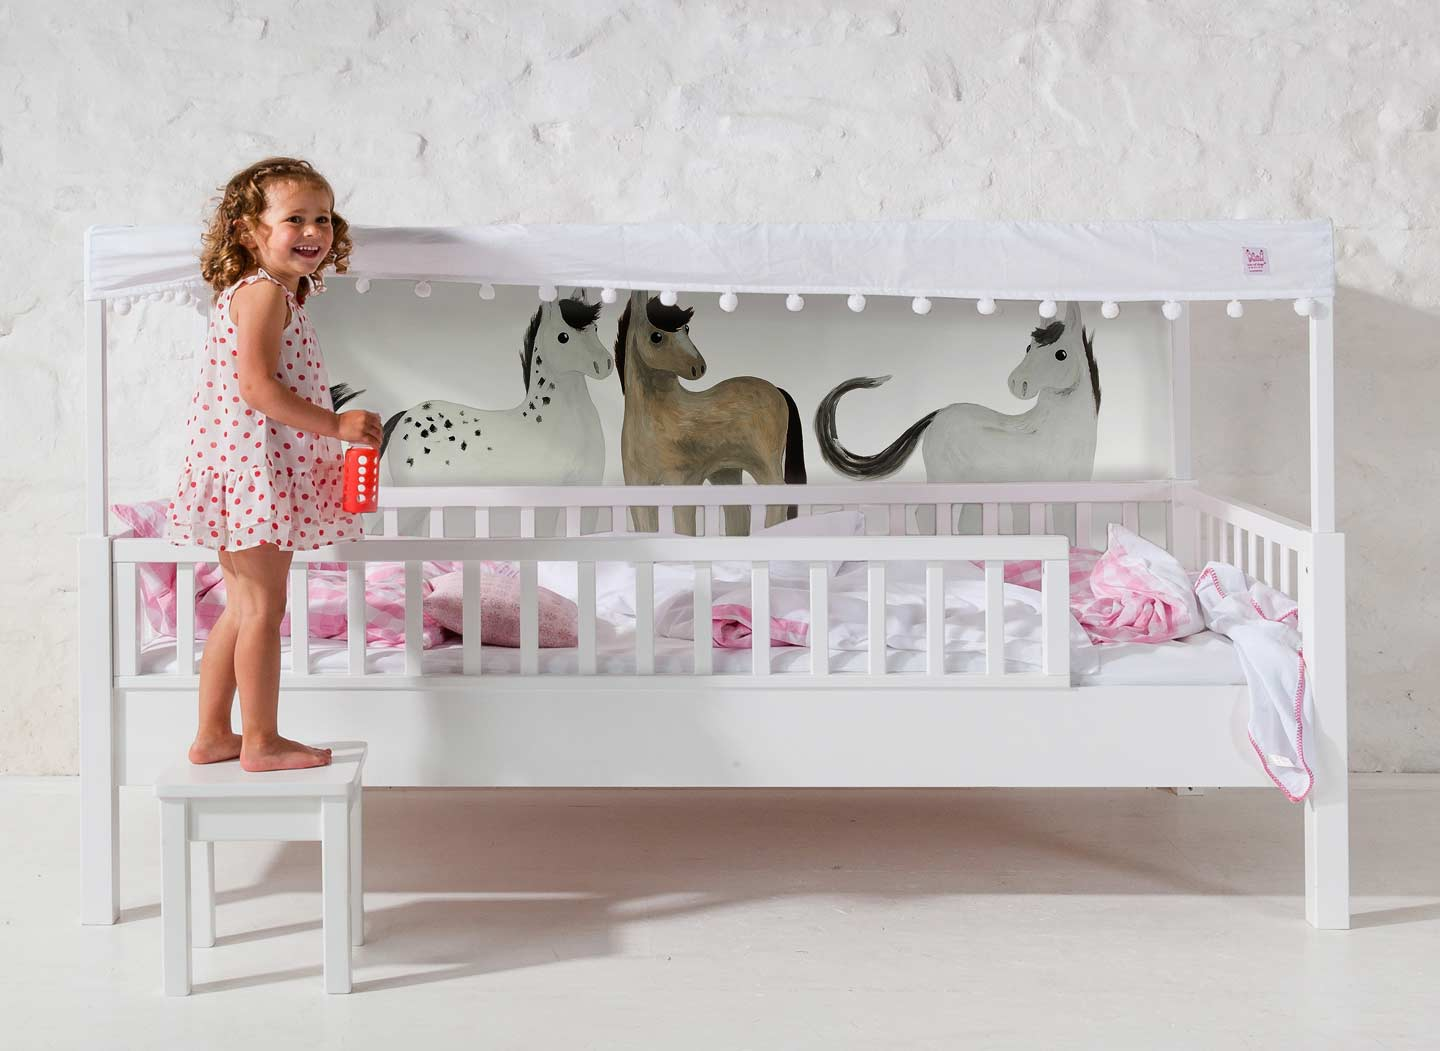 kinderbett ab 4 jahren flexa kinderbett play in grau. Black Bedroom Furniture Sets. Home Design Ideas